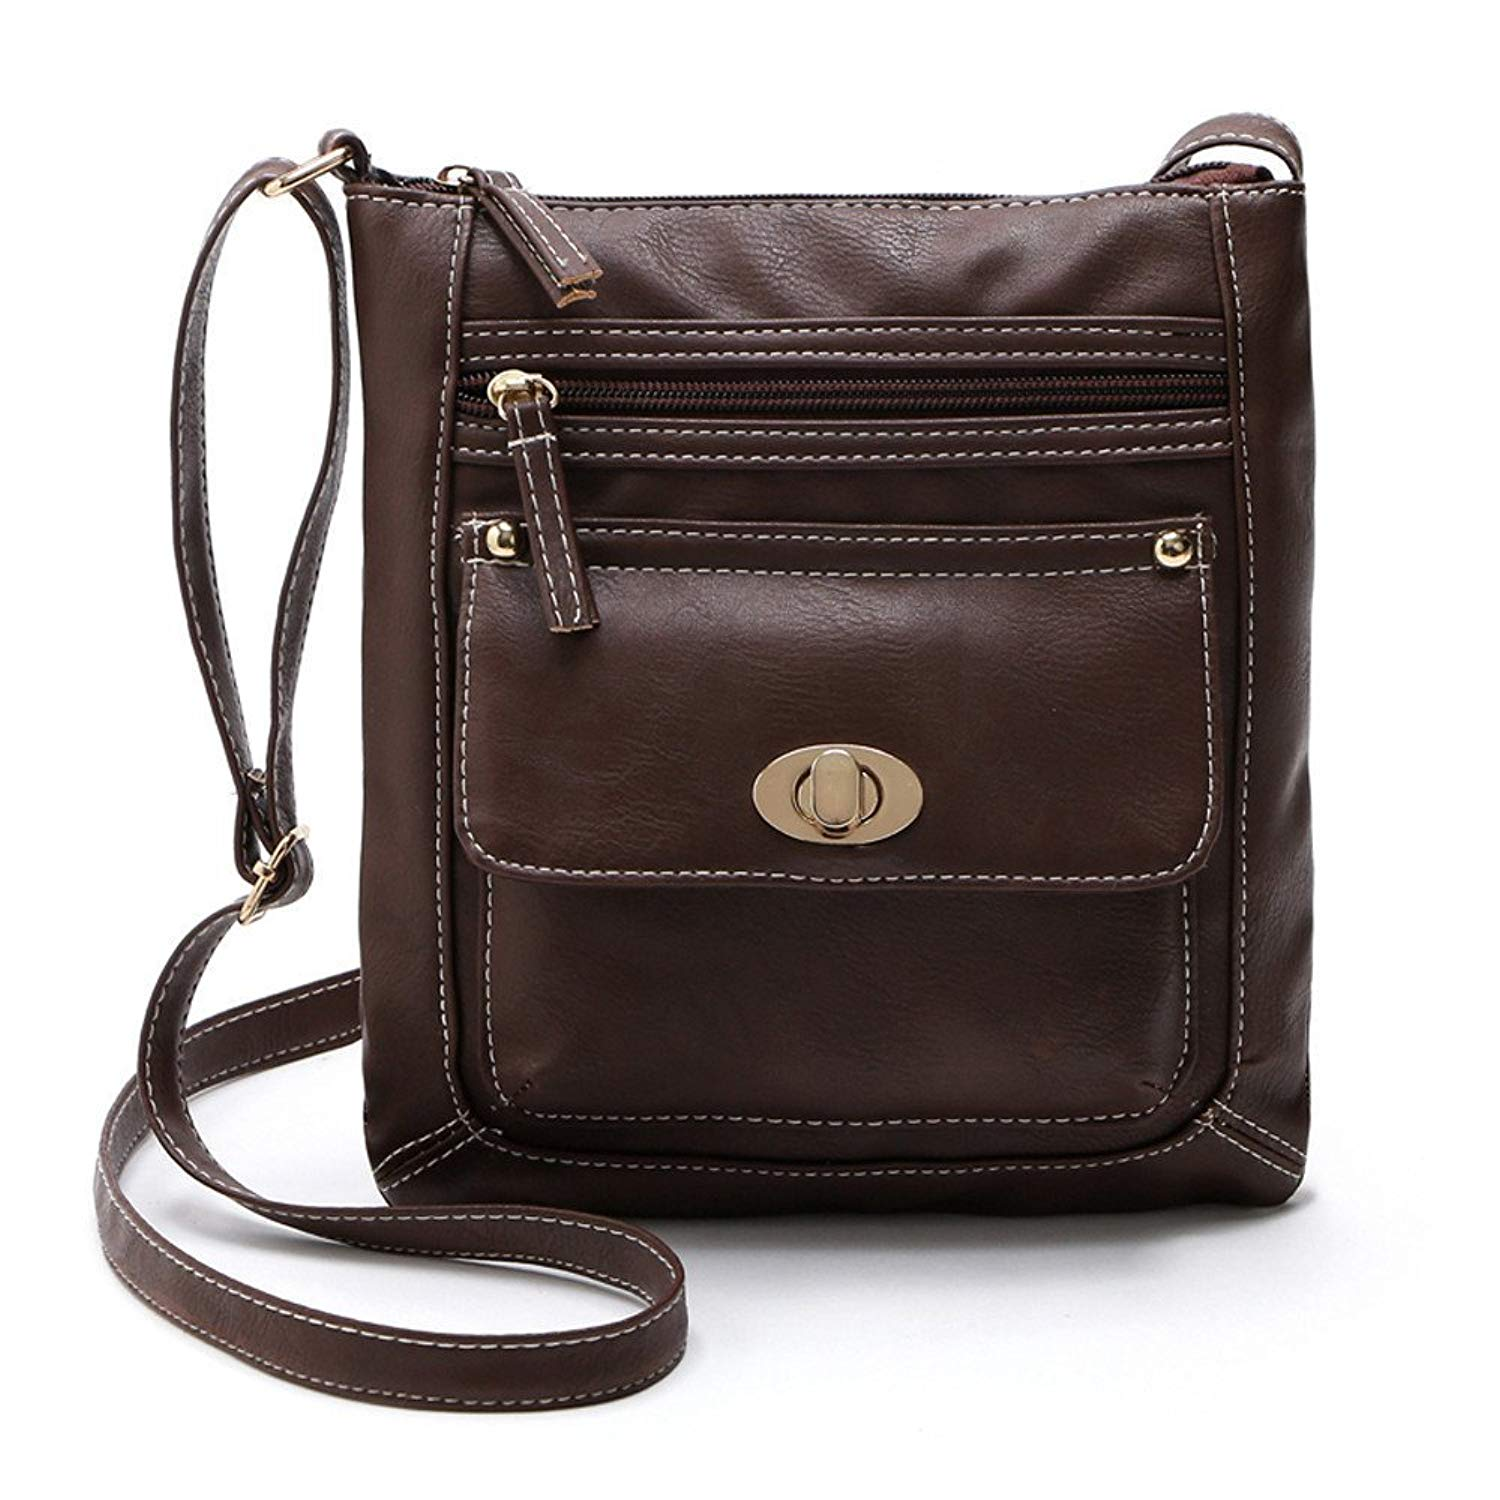 Liraly Women Bags,Big Promotion! Womens Leather Satchel Cross Body Shoulder Messenger Bag